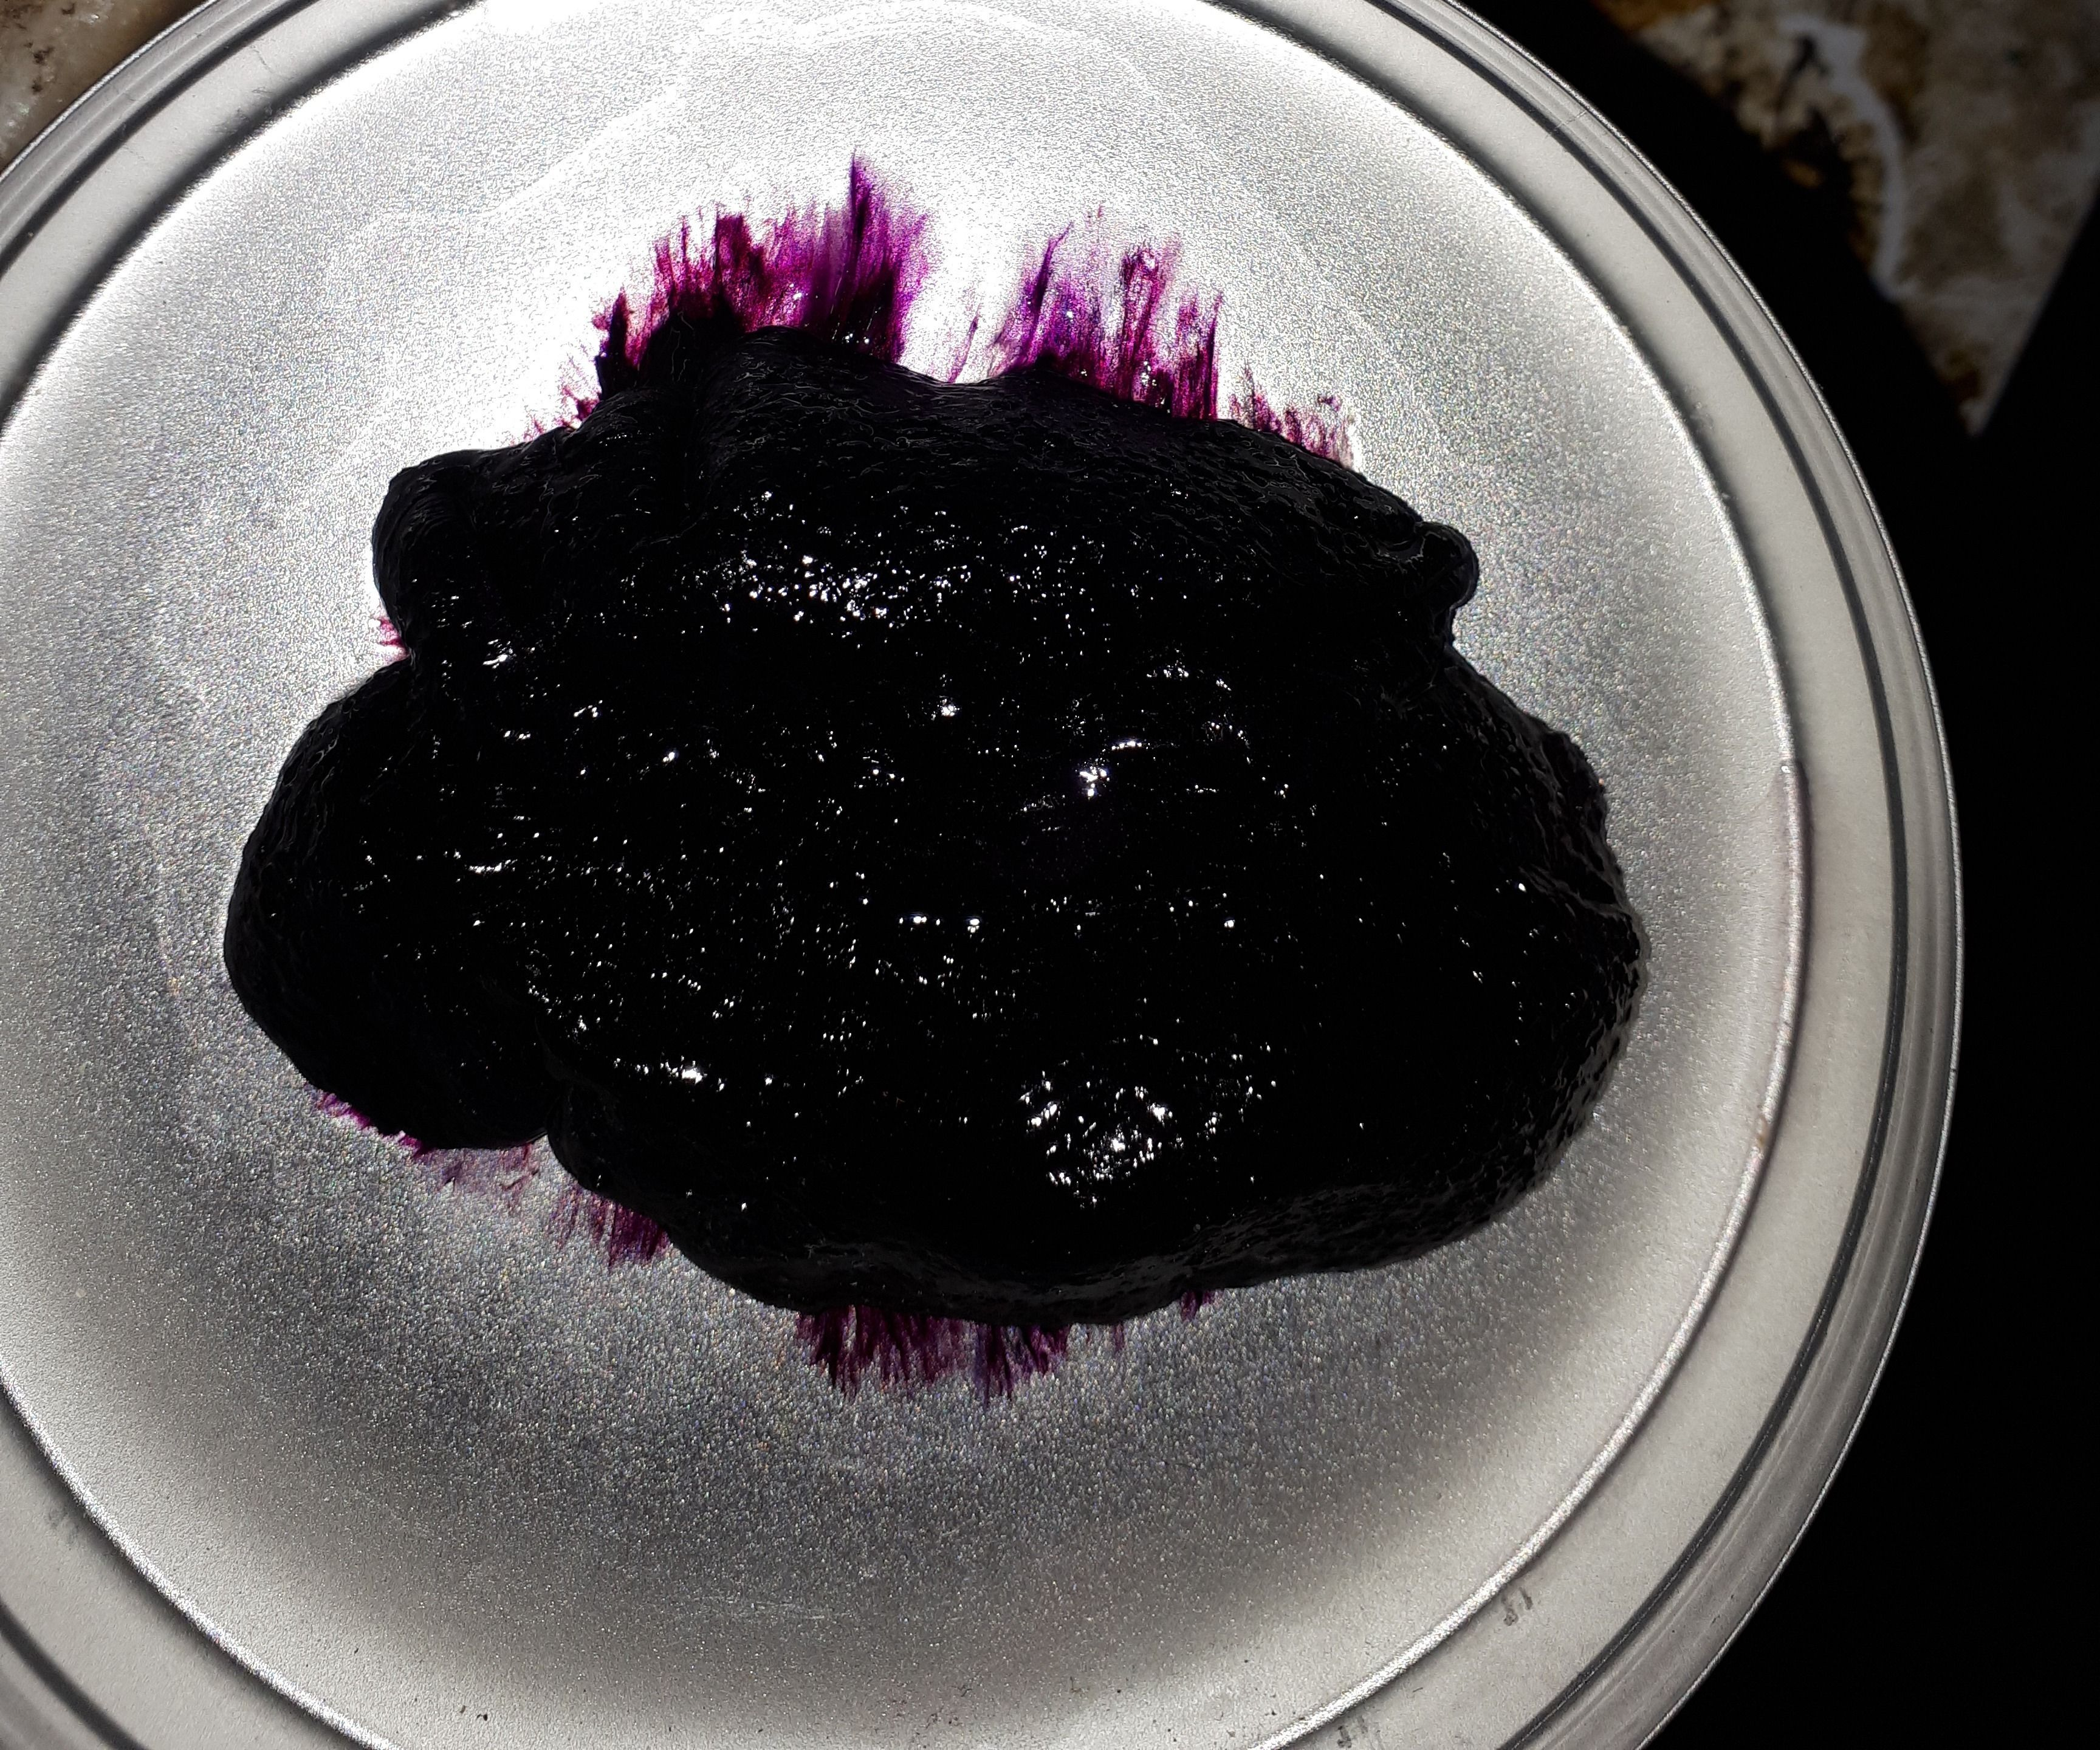 Dyed Polyvinylpyrrolidone Gel With Iodine and Rit Dyes for Art (3D Effects).